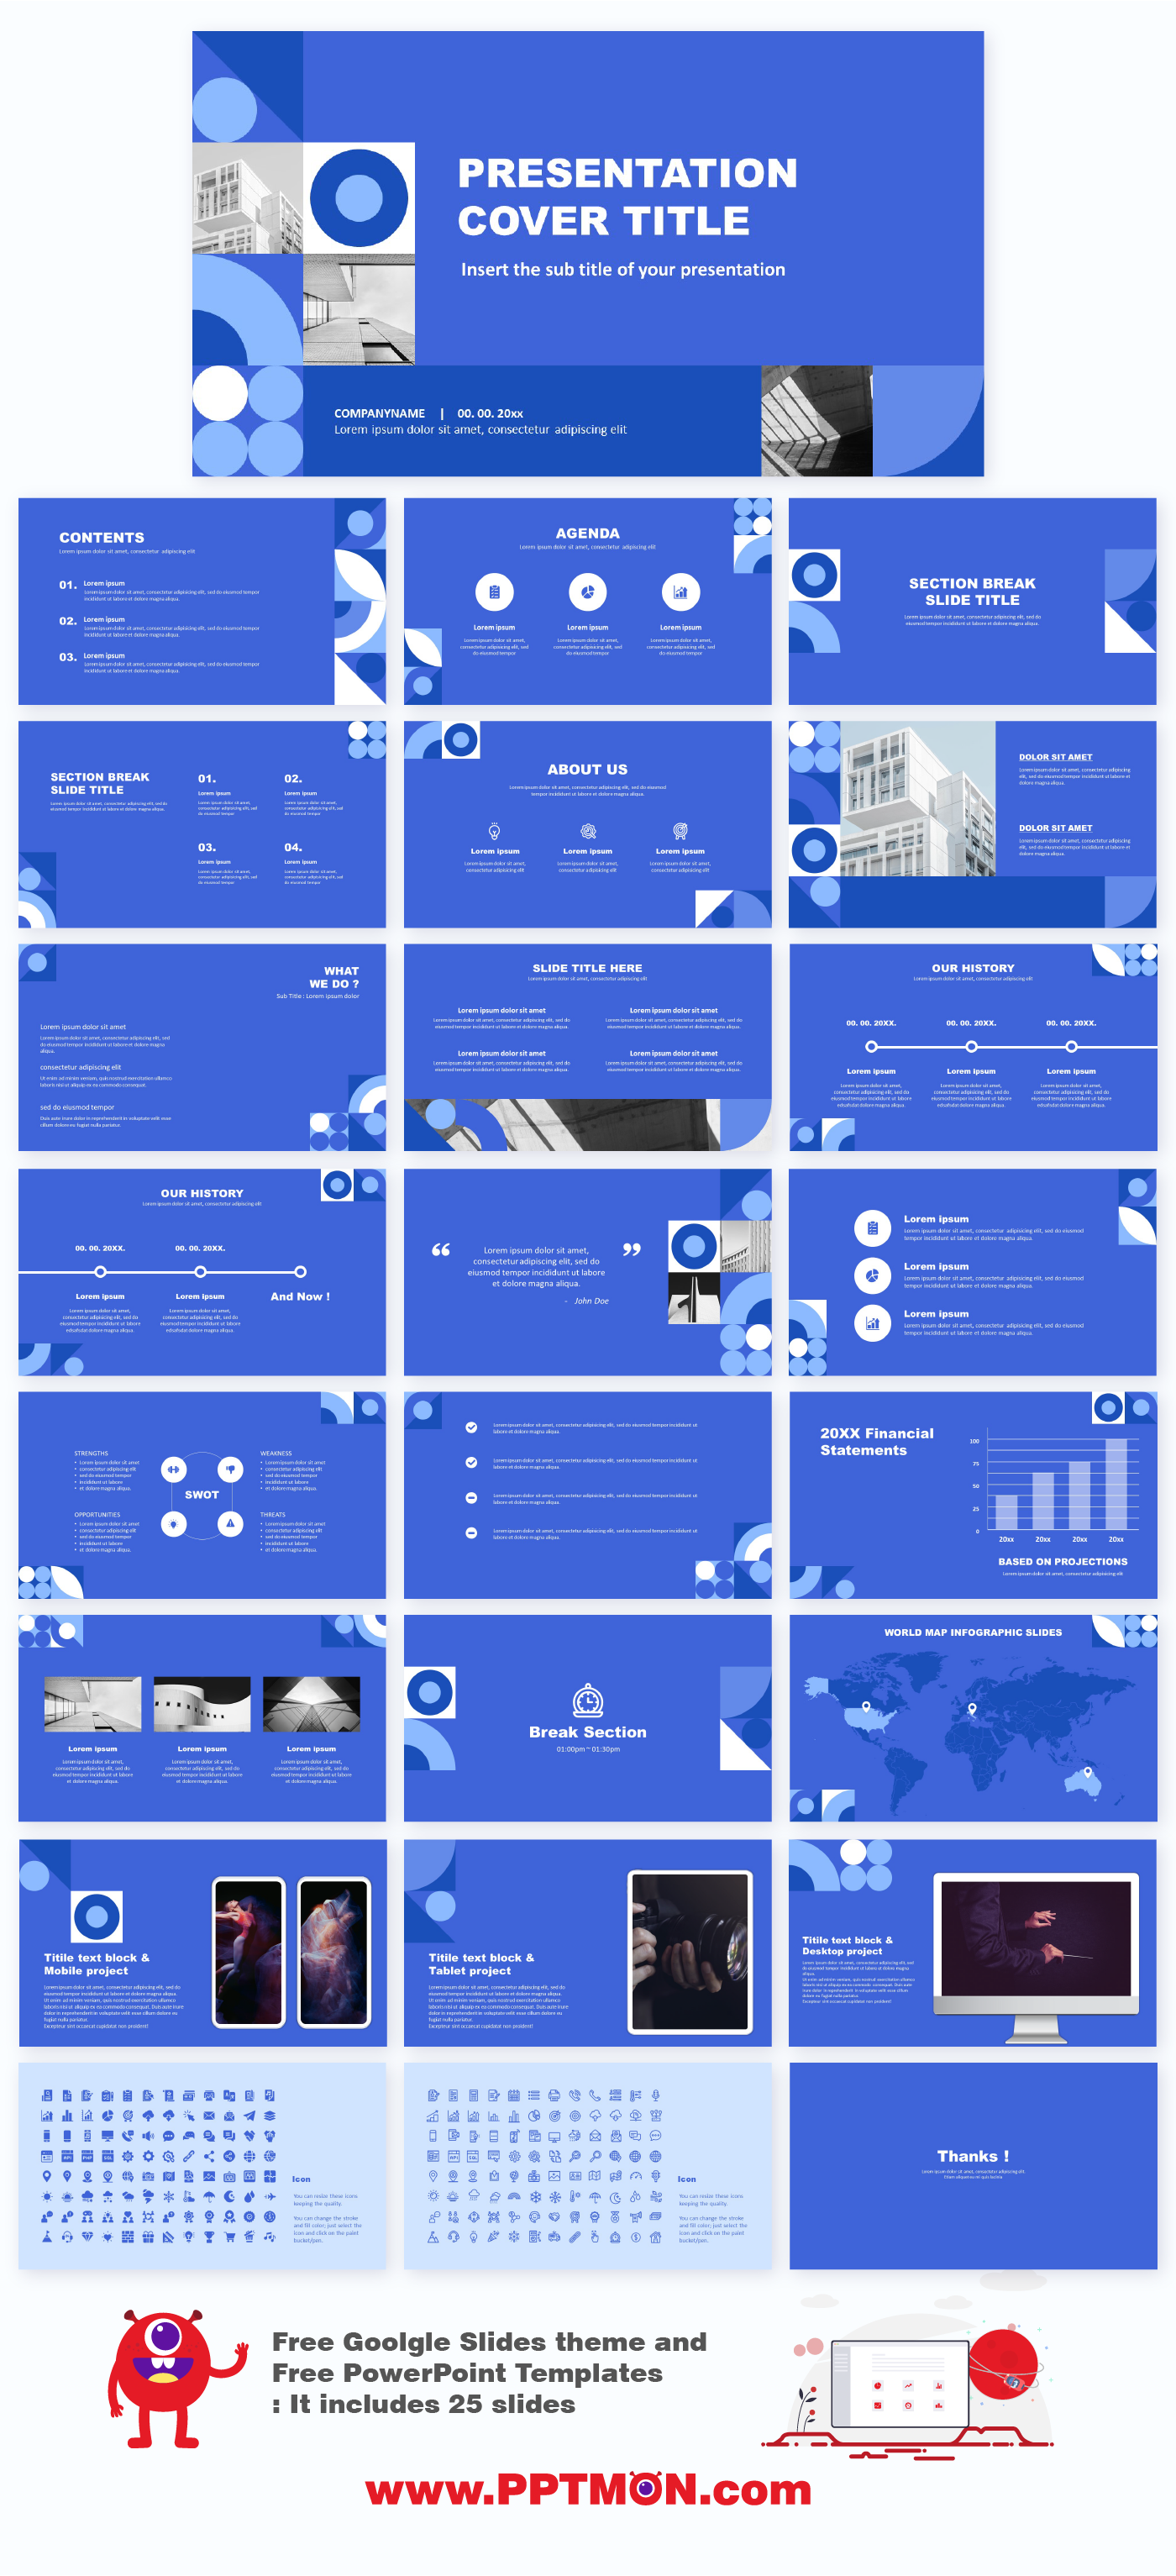 Blue Geometric Presentation Free Google Slide Theme And Powerpoint Templates Free D In 2020 Powerpoint Templates Powerpoint Template Free Powerpoint Design Templates